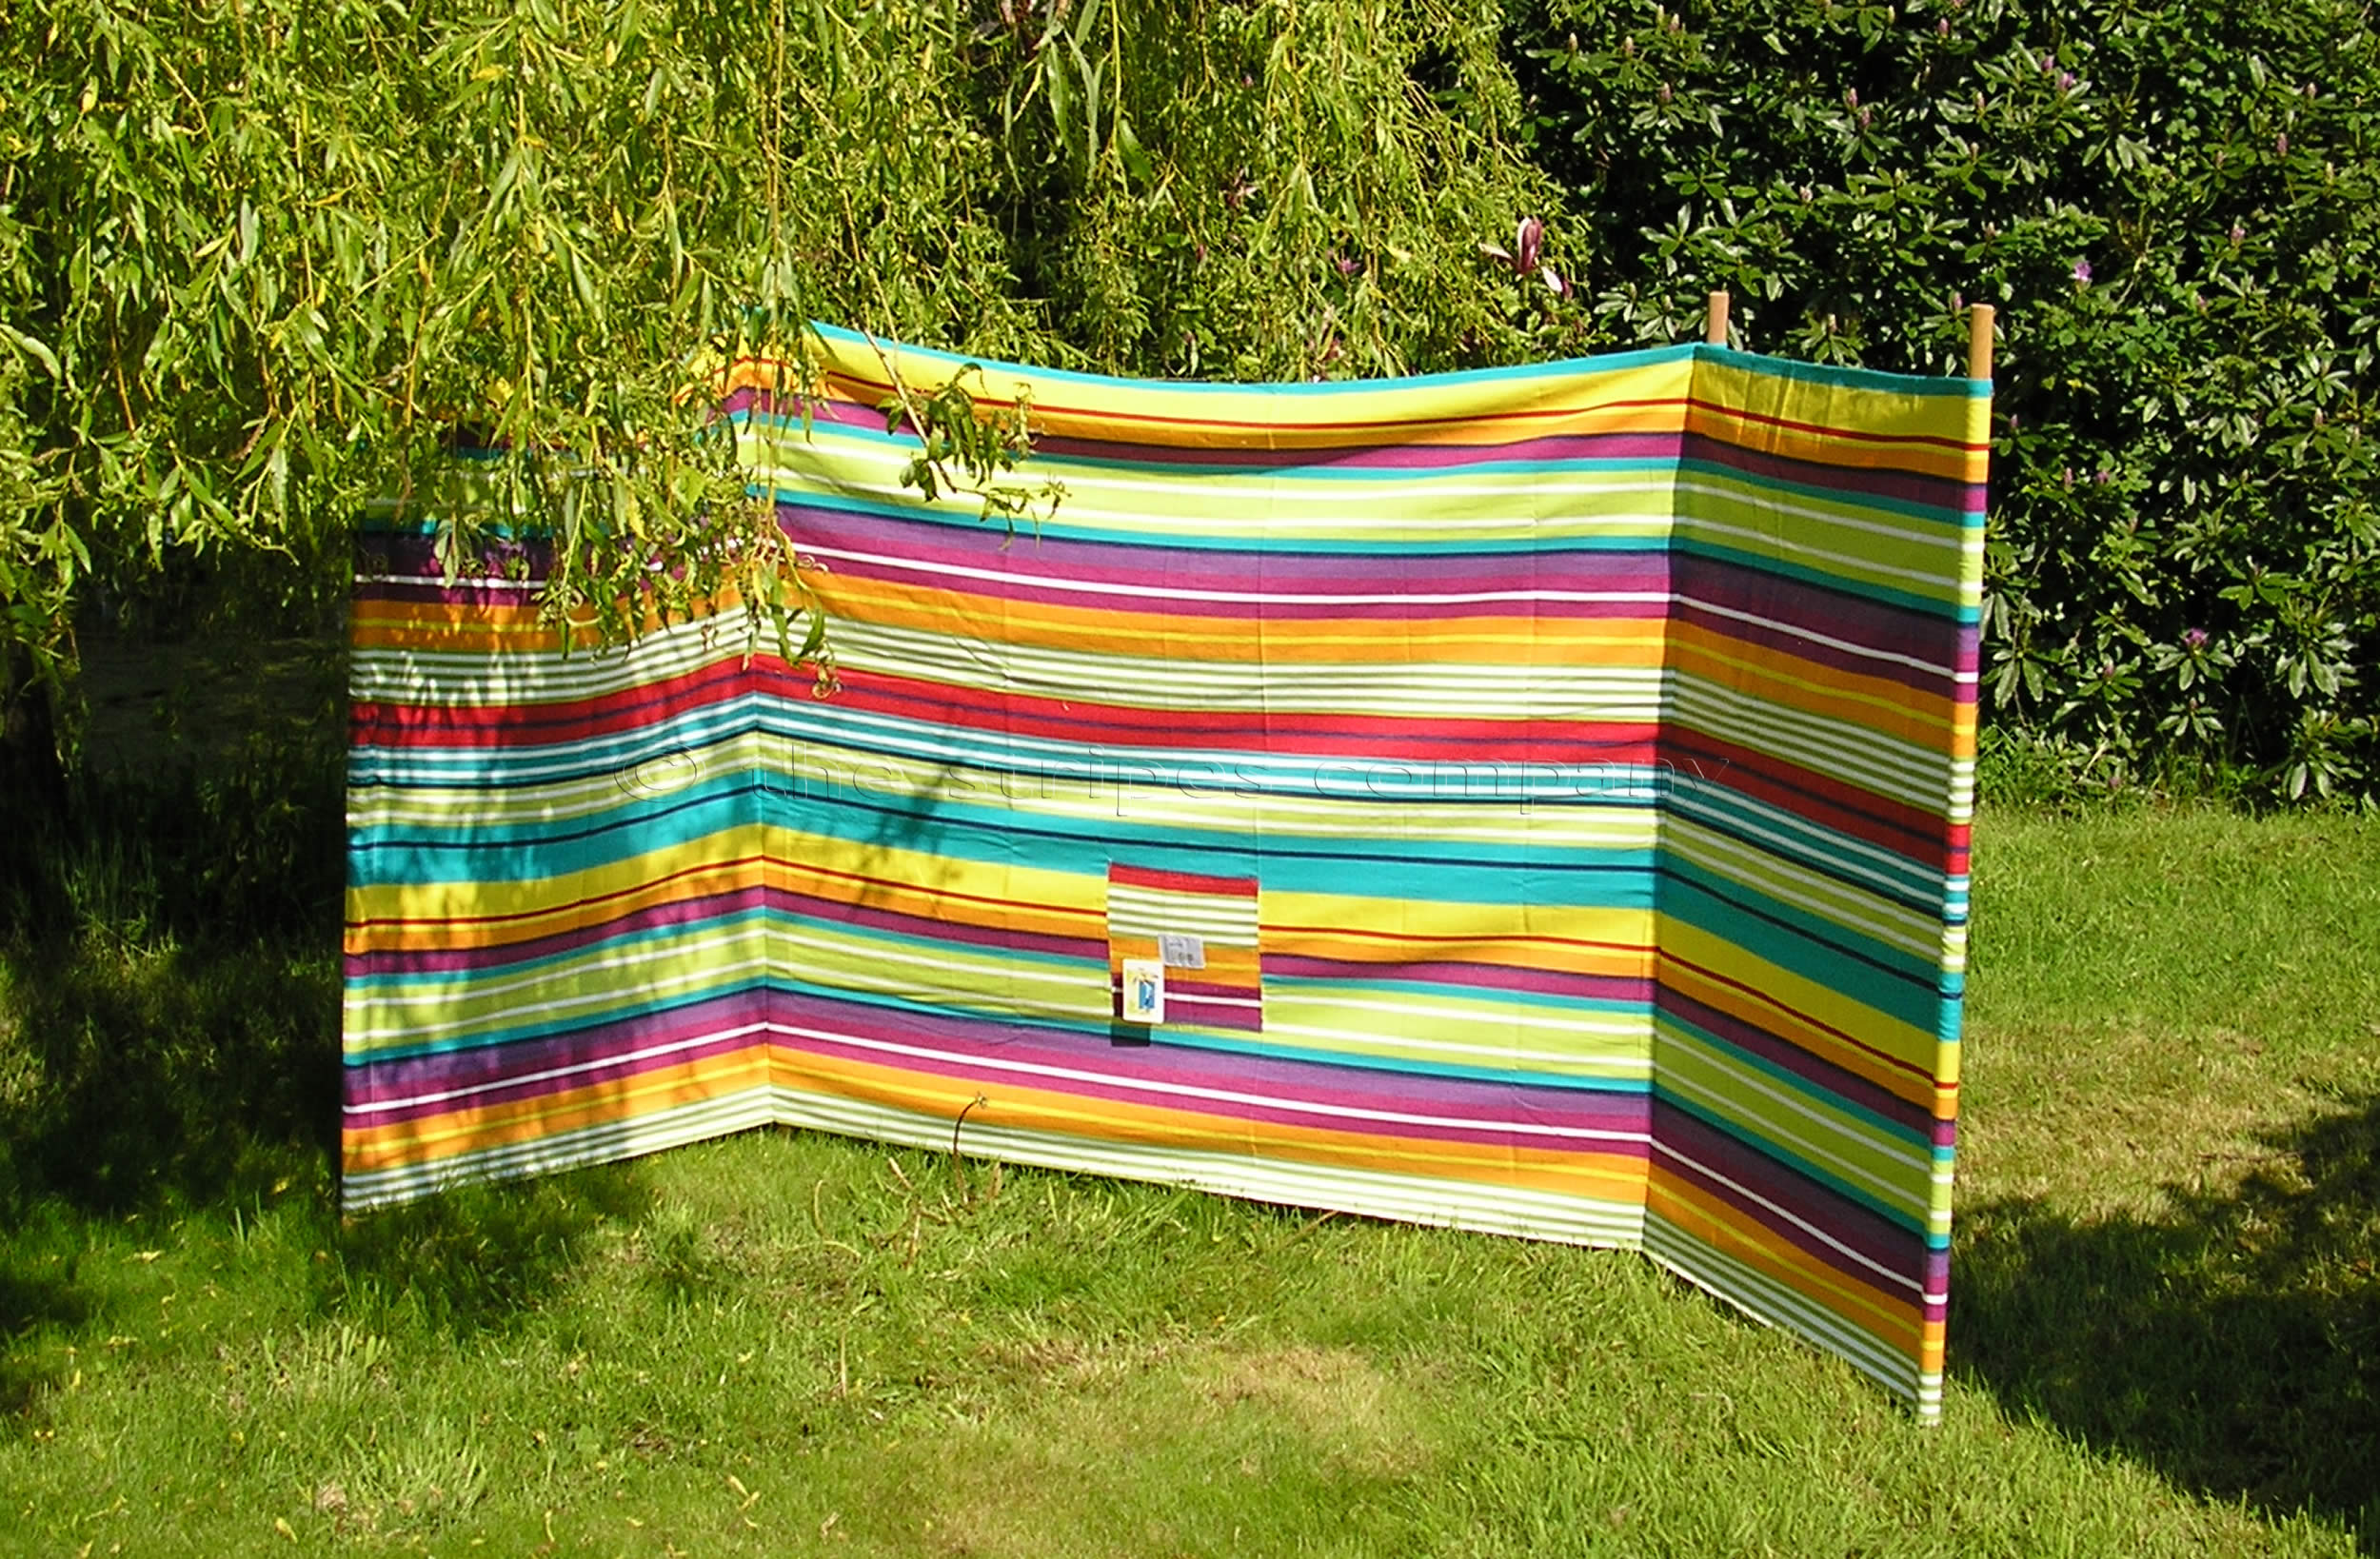 Turquoise Striped Windbreaks with 4 poles Aerobics Stripe